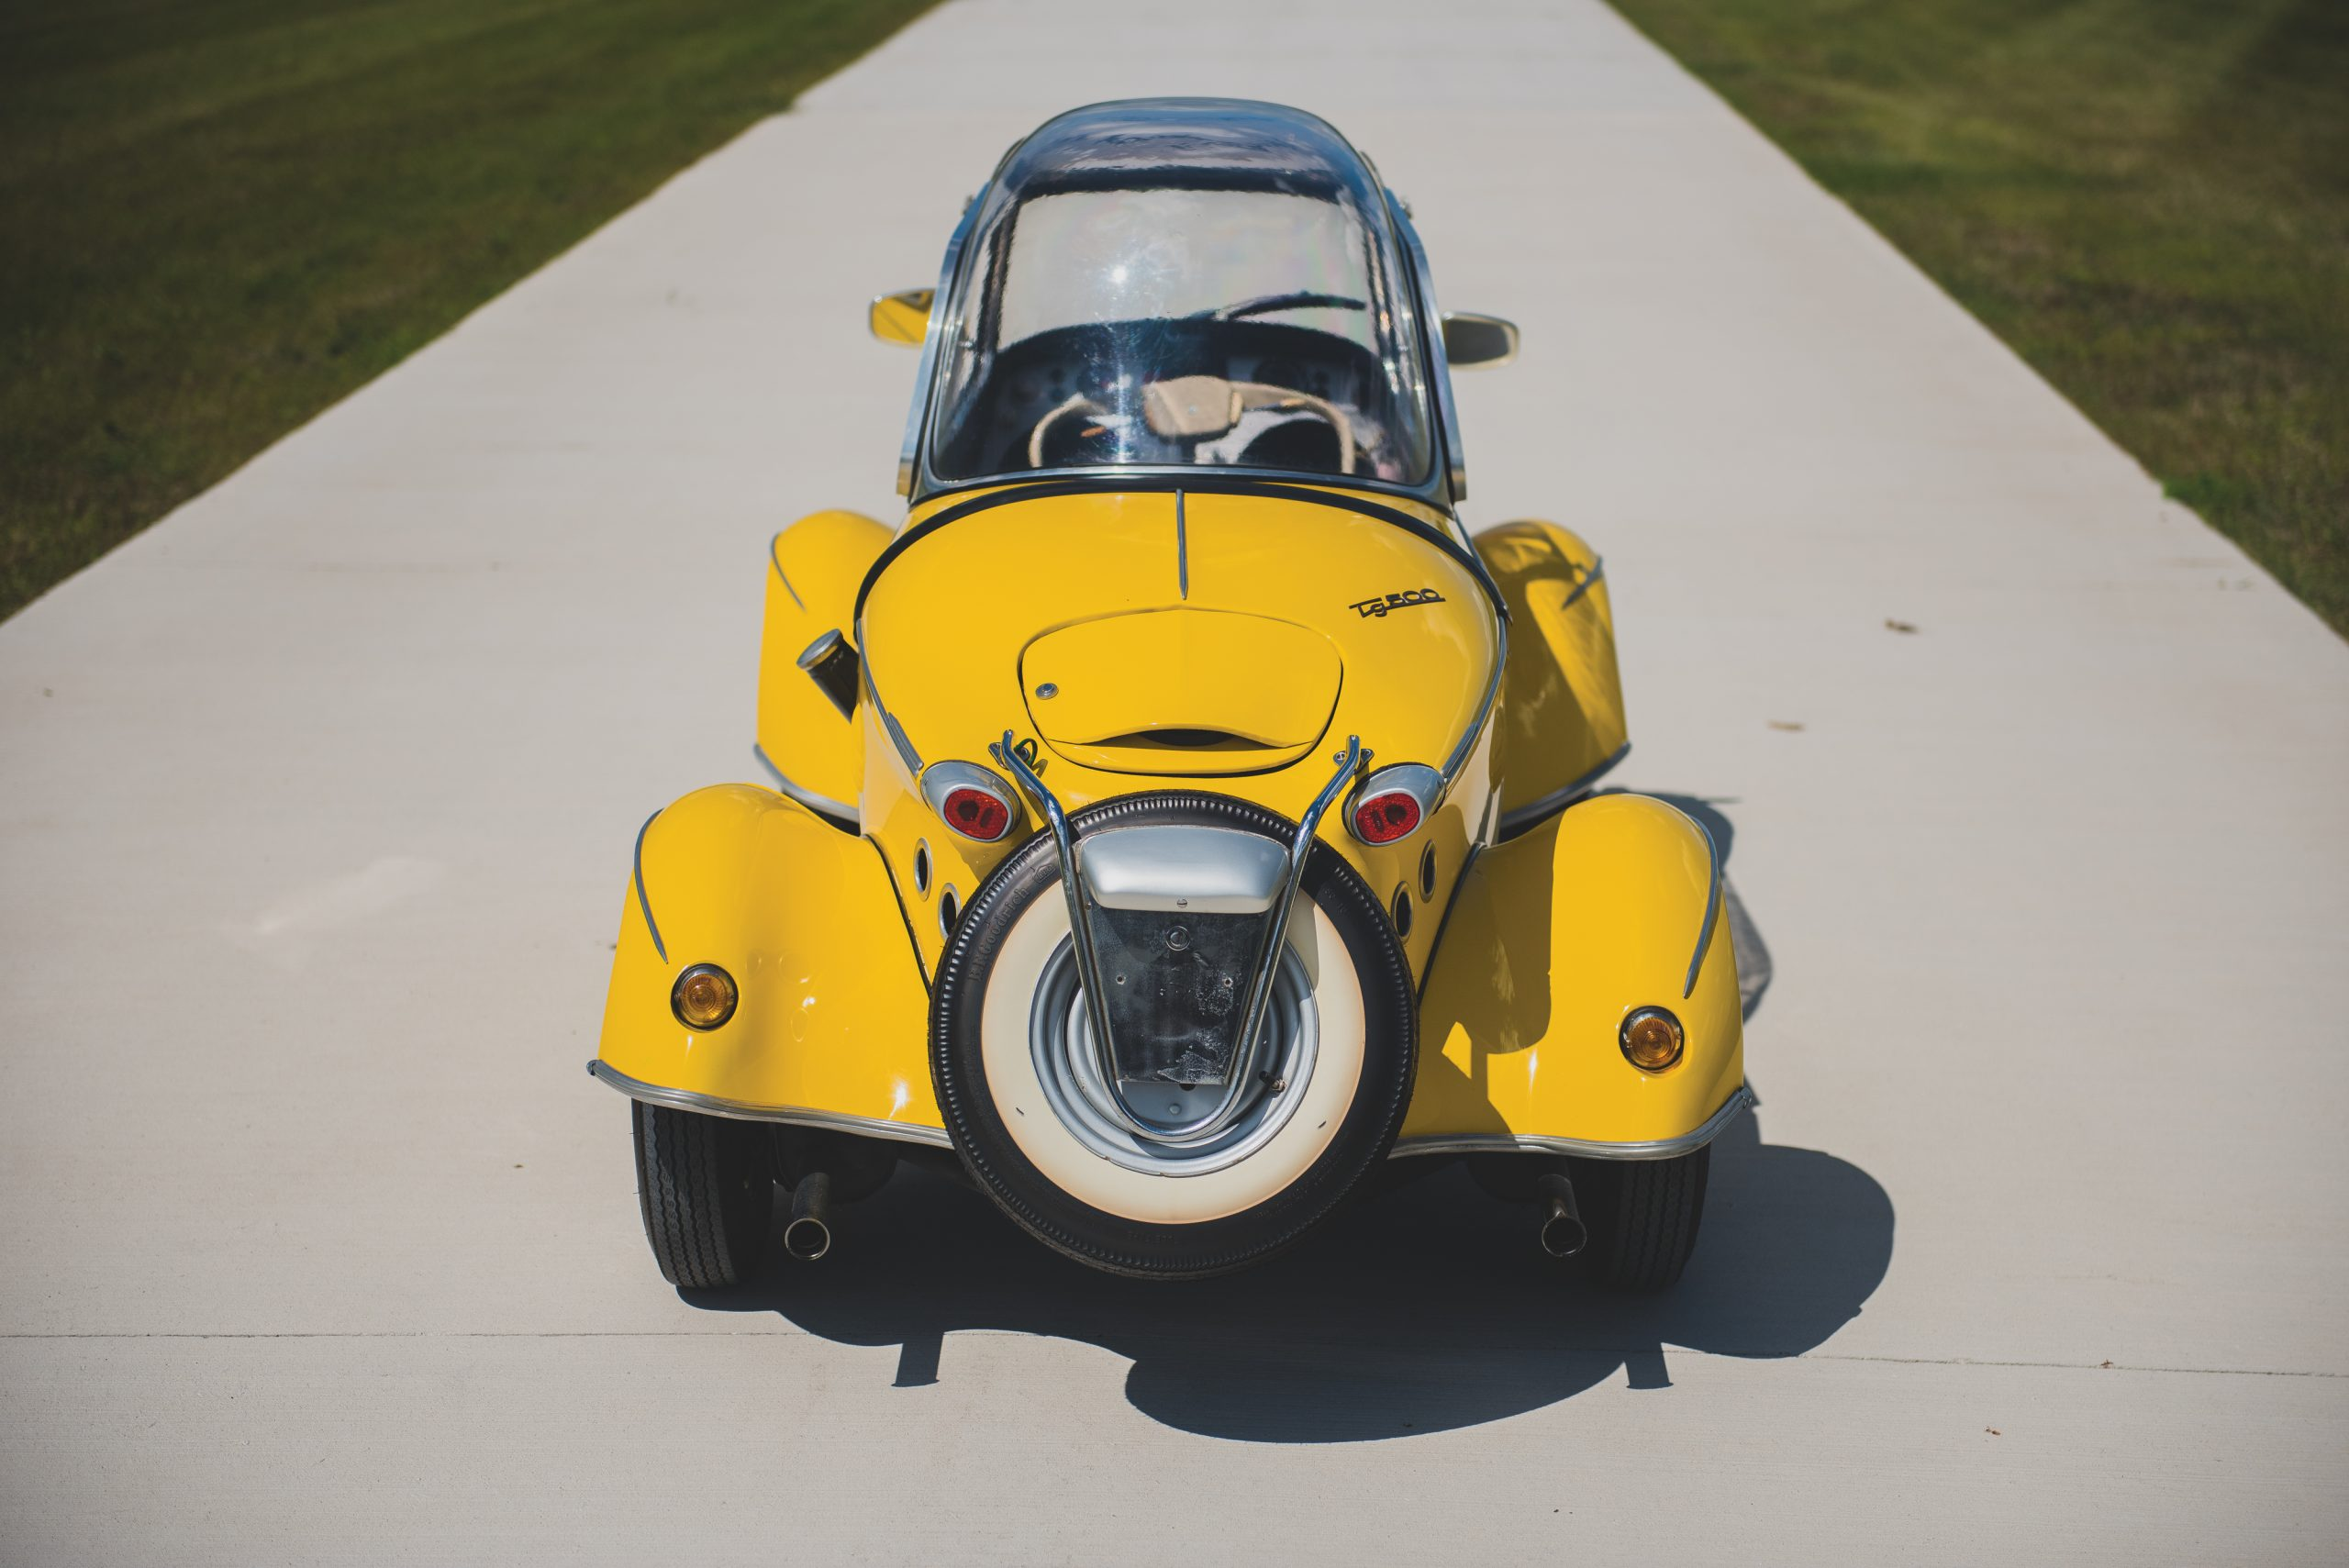 Yellow 1960 FMR Tg 500 Tiger rear